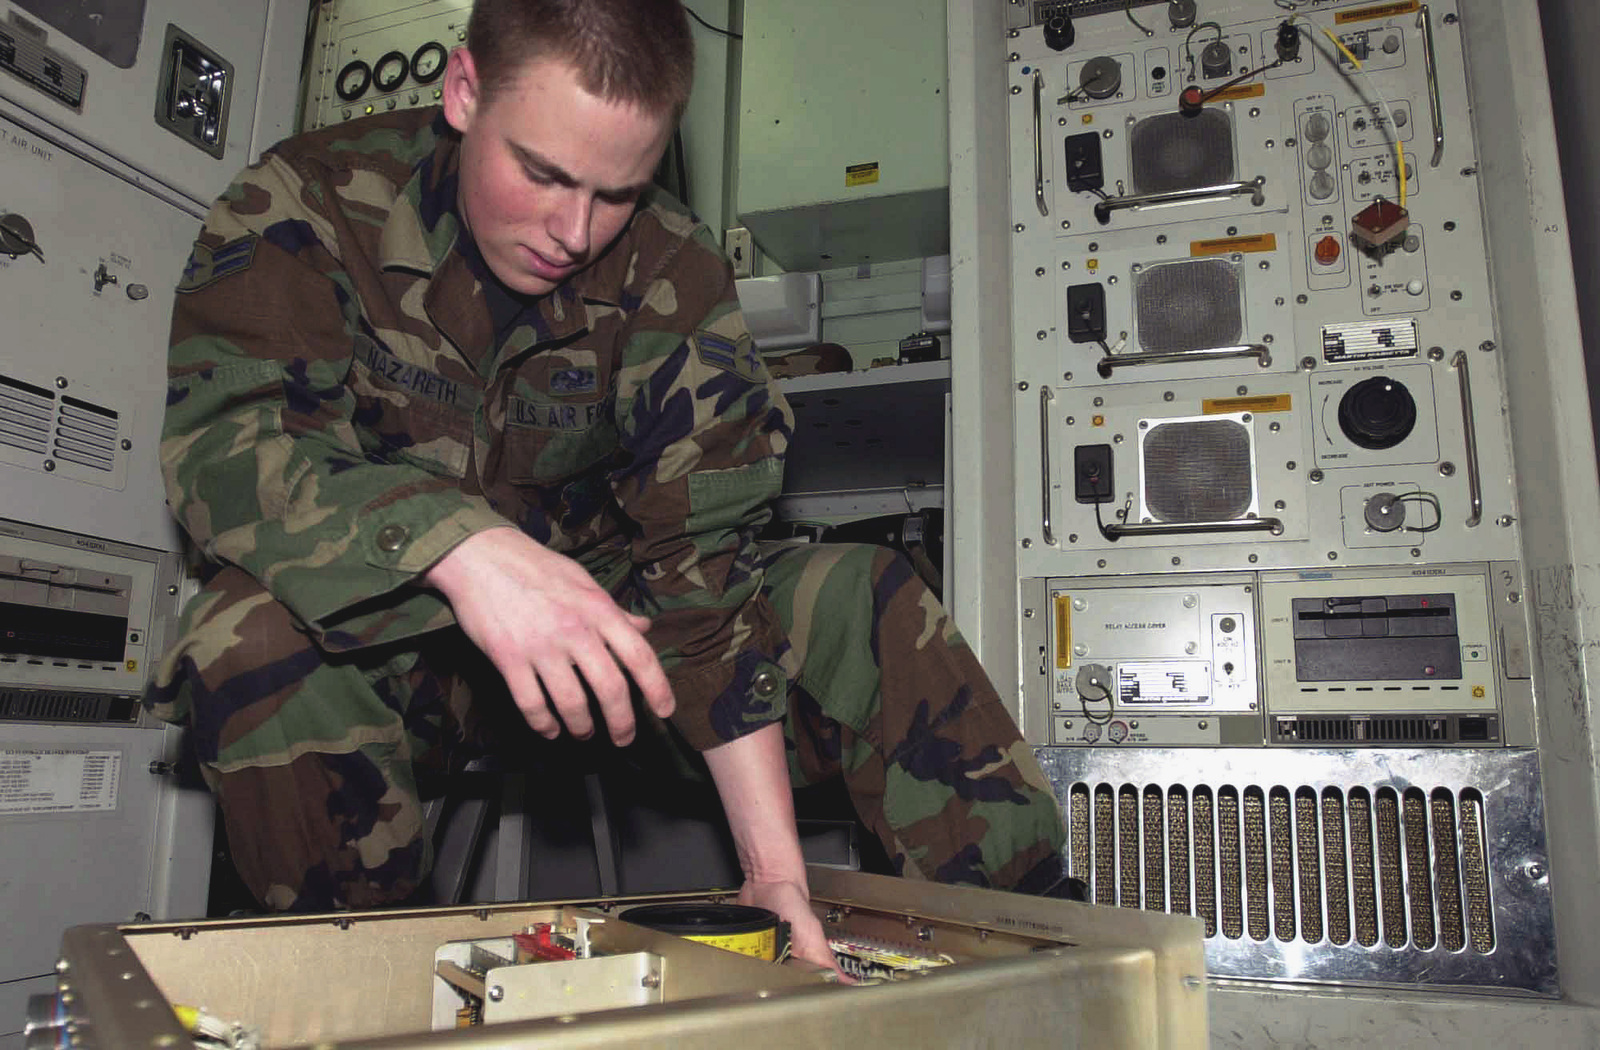 US Air Force (USAF) AIRMAN First Class (A1C) Jason Nazareth, Avionics Sensor Technician, 31st Maintenance Squadron replaces an Alternating Current (AC) sensor relay in the Environmental Control Unit Test Chamber, at Aviano Air Base (AB), Italy